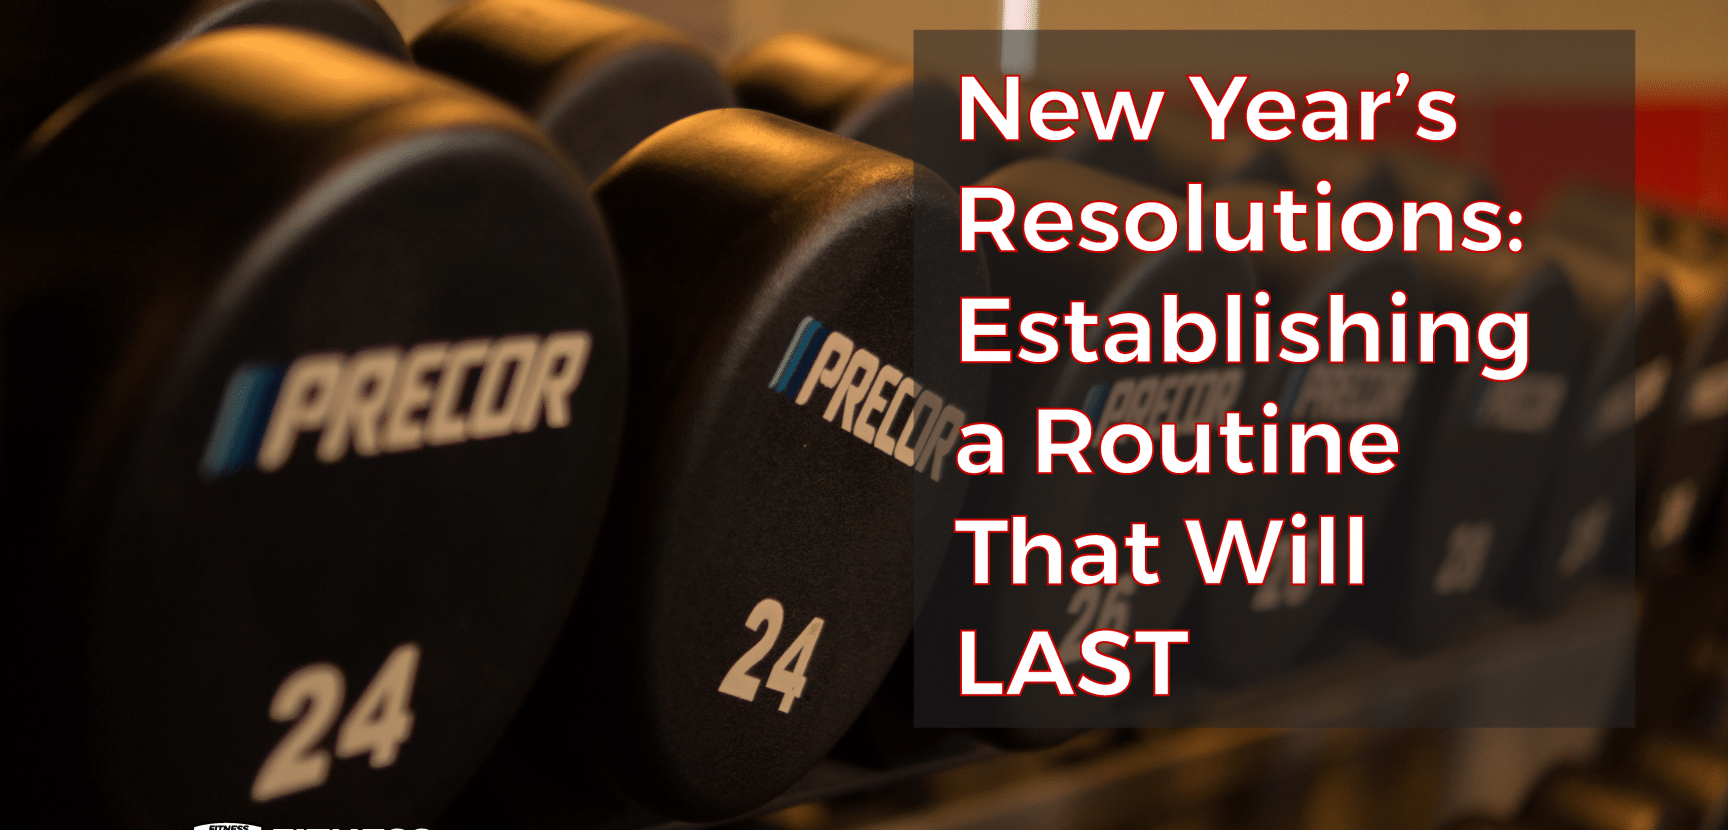 New Year's Resolutions: Establishing a Routine That Will Last